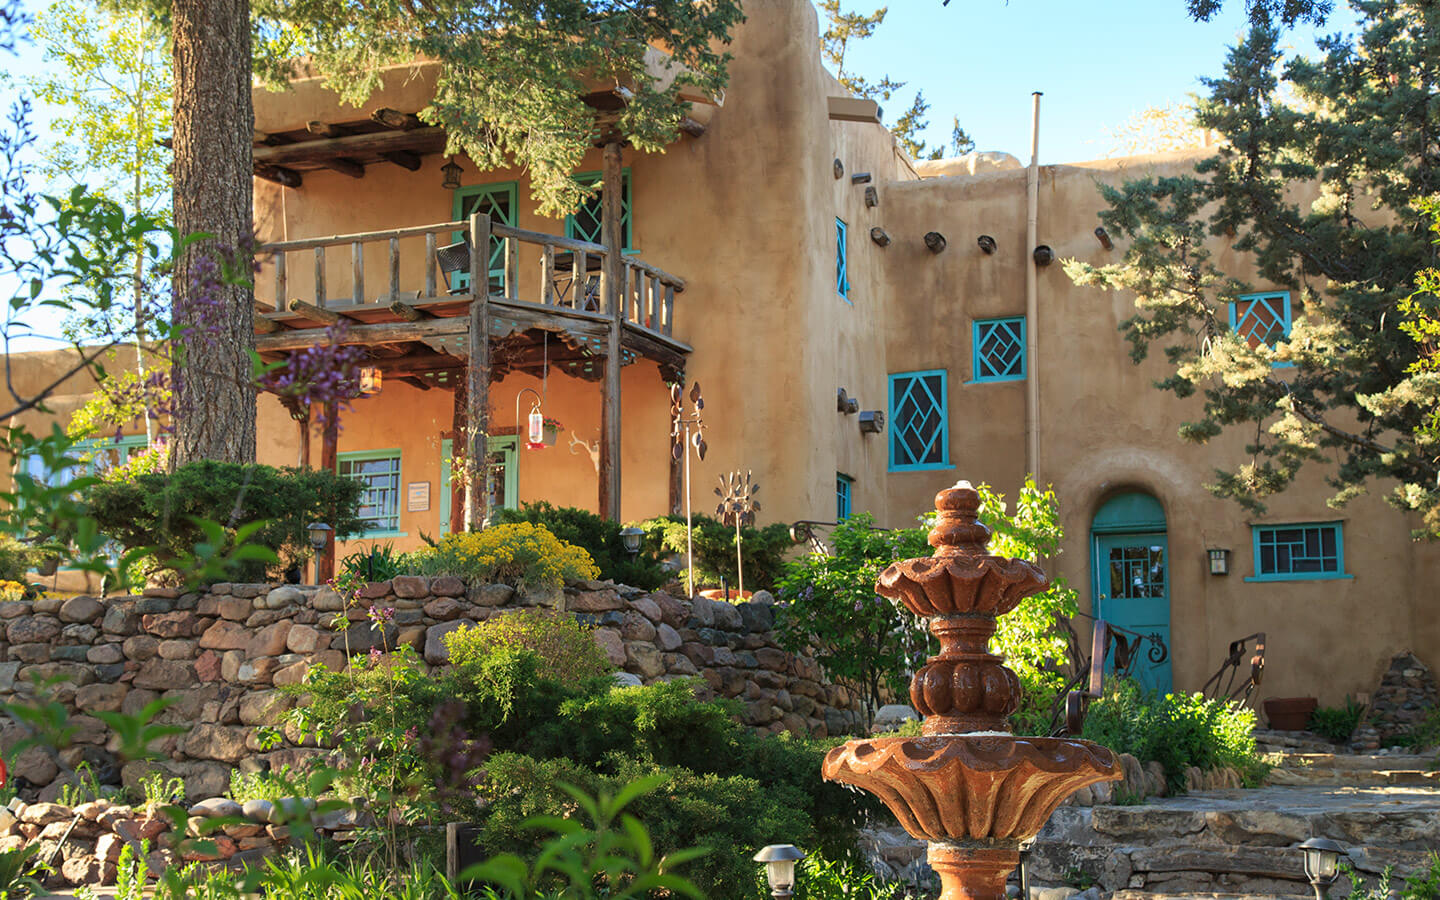 The exterior of our Santa Fe boutique hotel